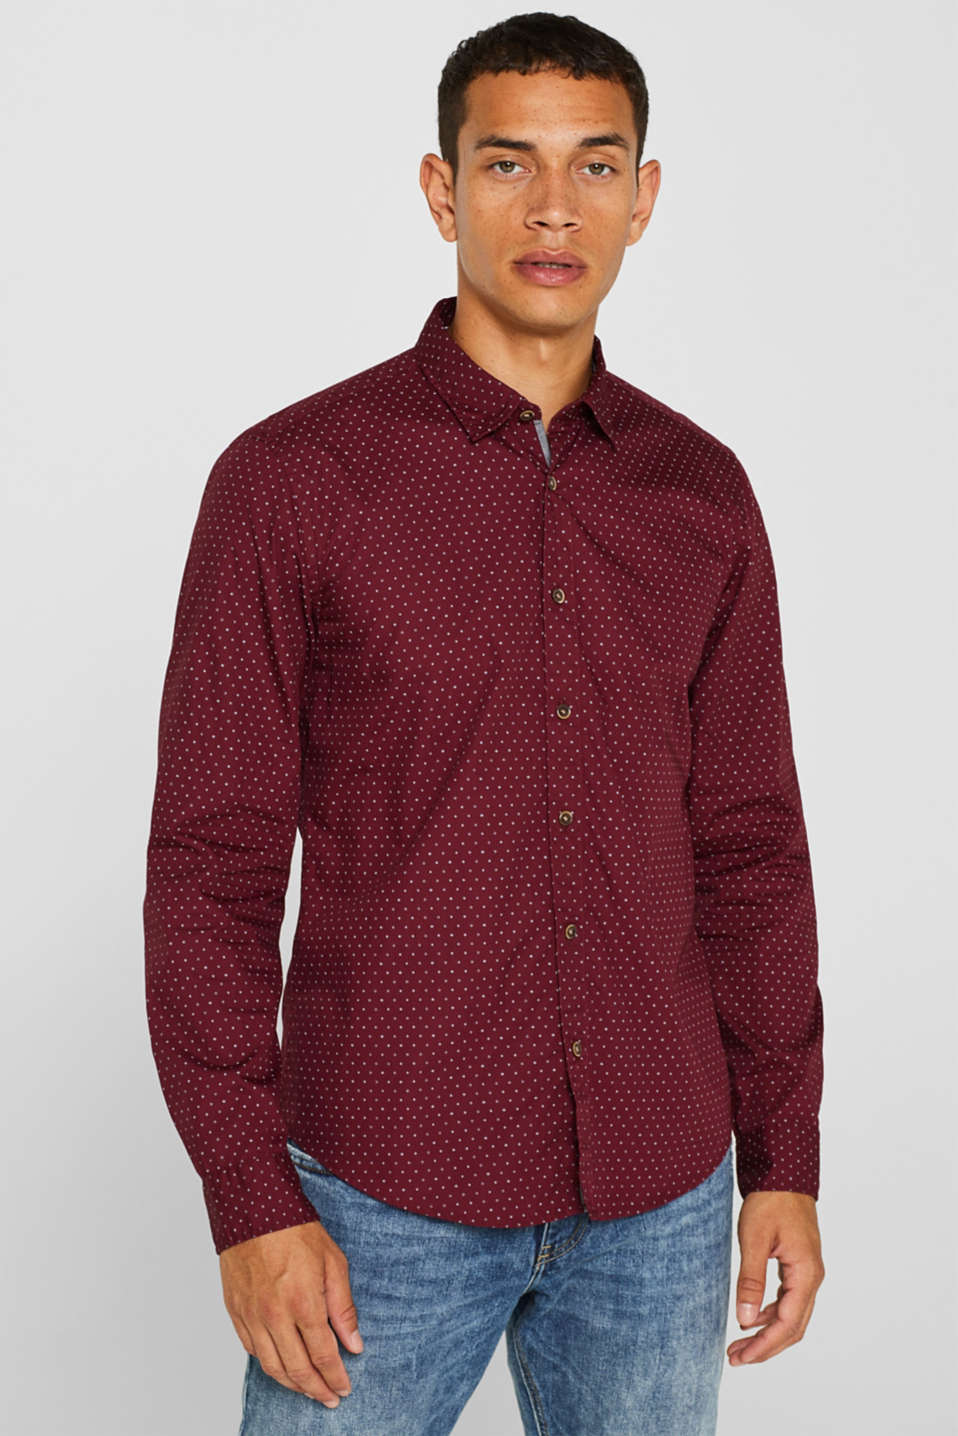 Esprit - Shirt with polka dots, 100% cotton